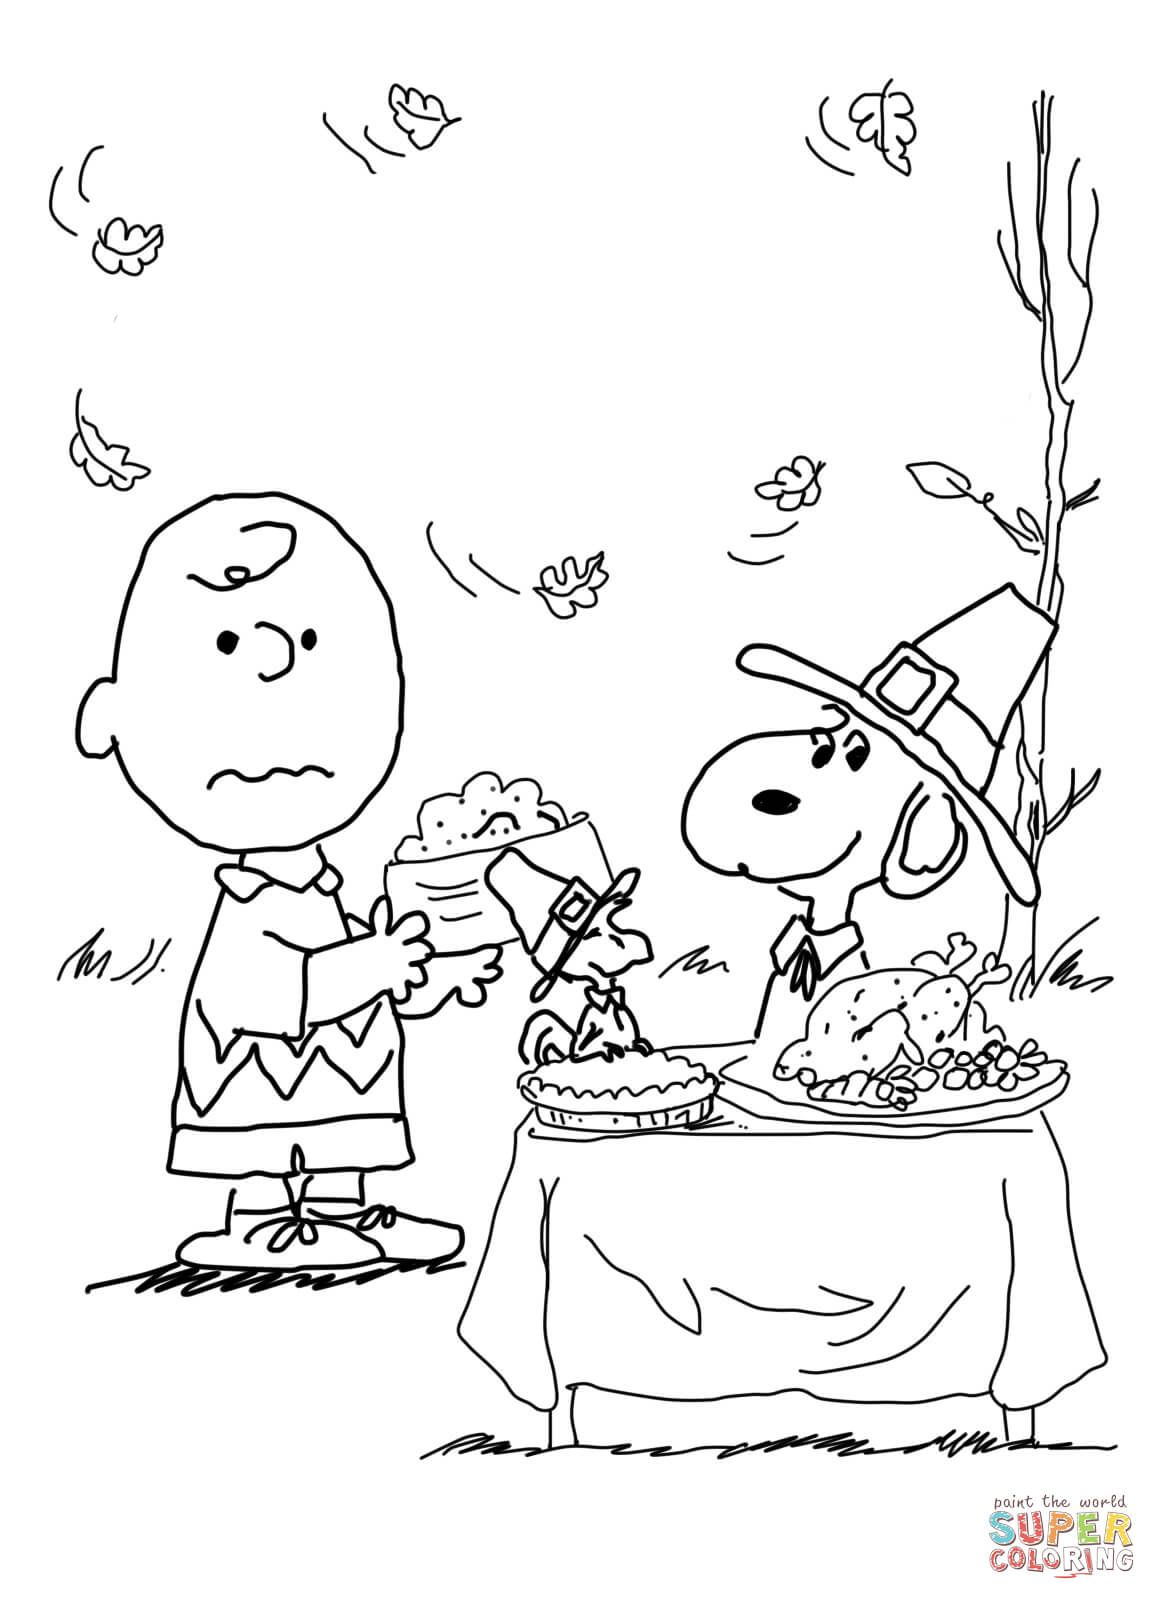 Charlie Brown Thanksgiving coloring